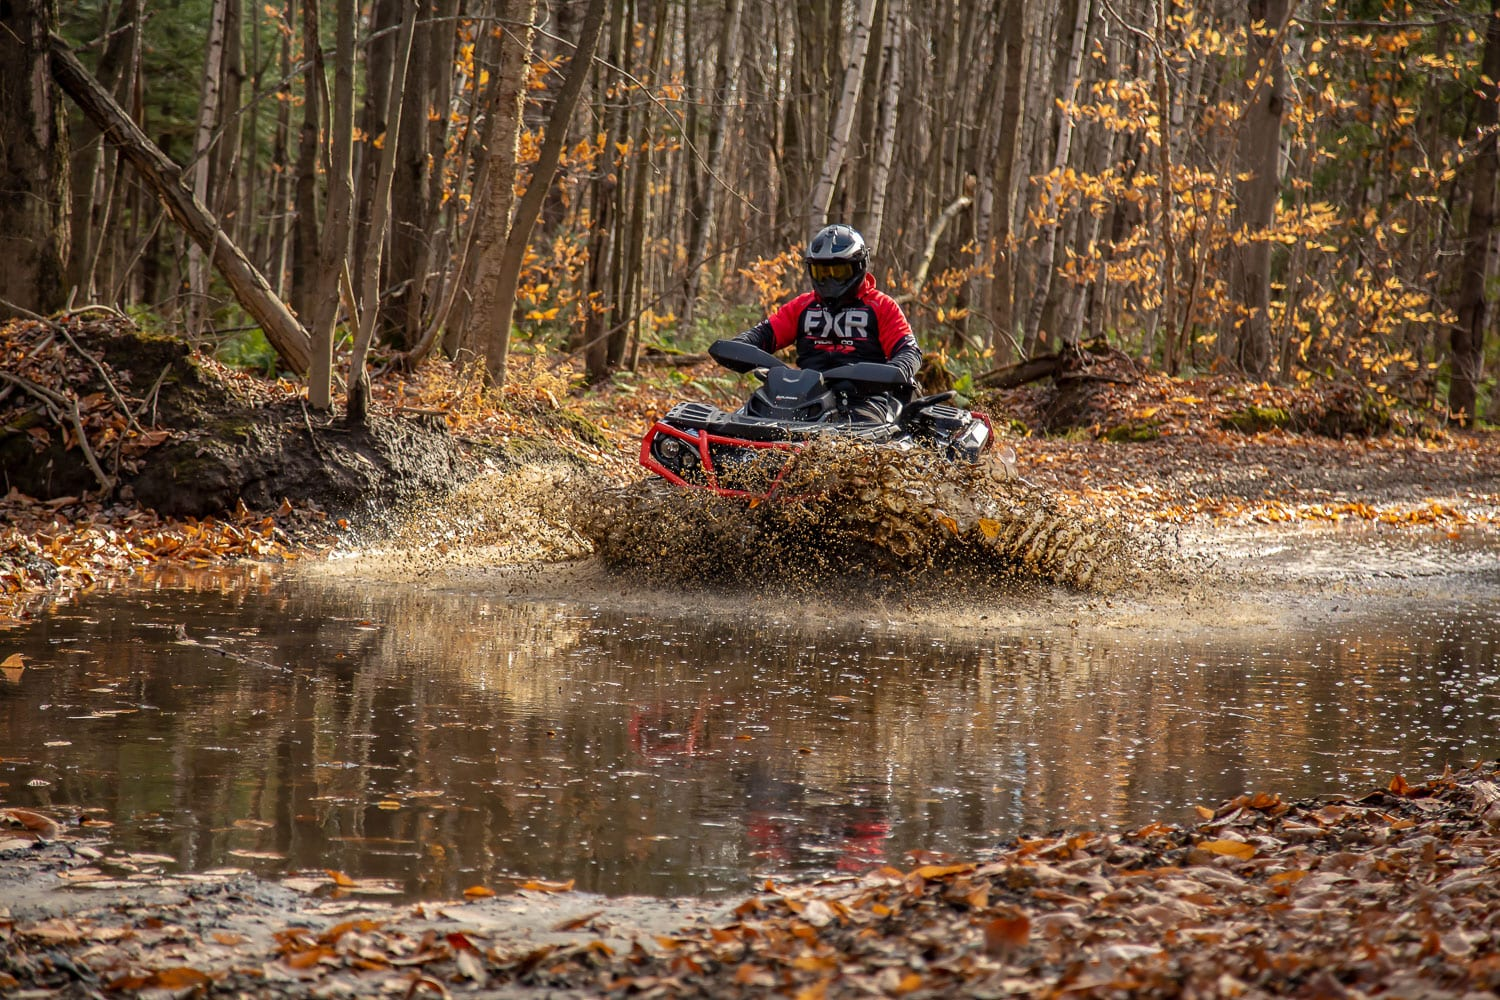 2019 Can-Am Outlander Max XT 850 Review